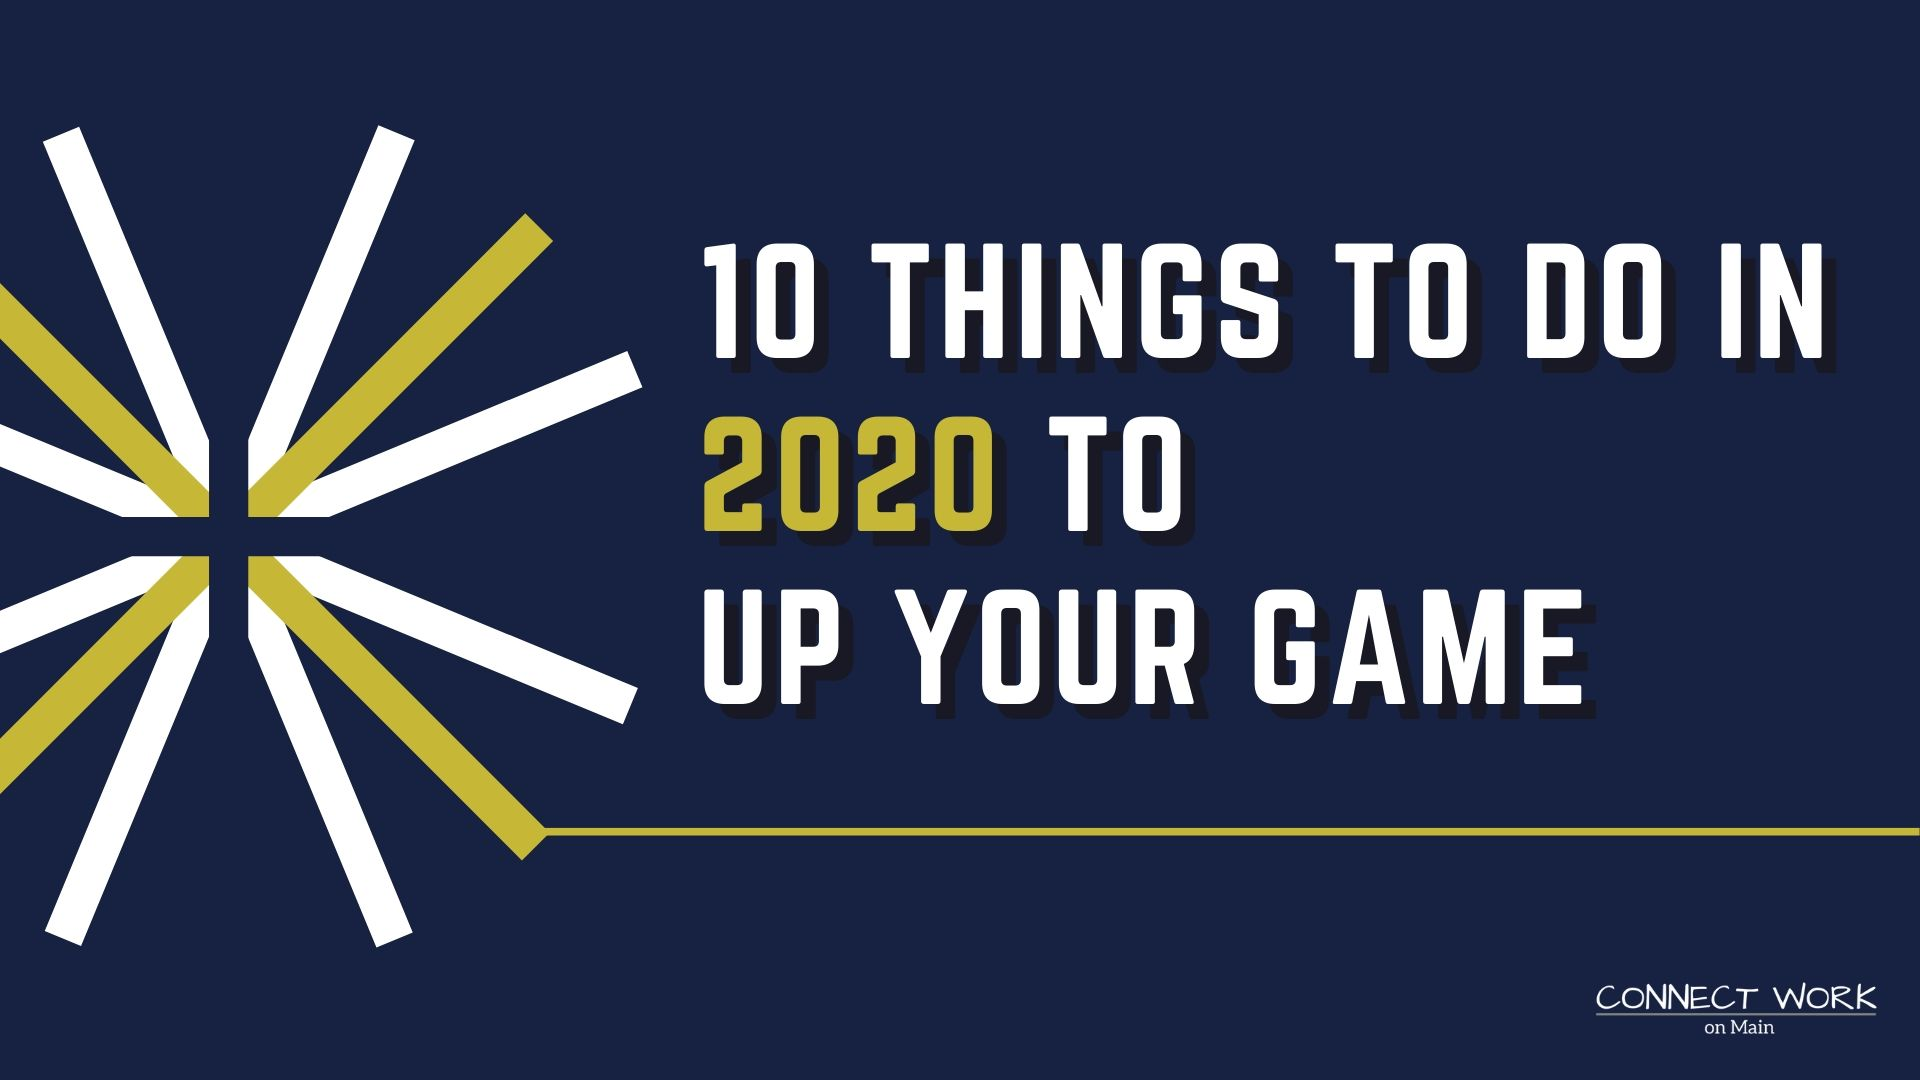 10 Things to do in 2020 to up your game